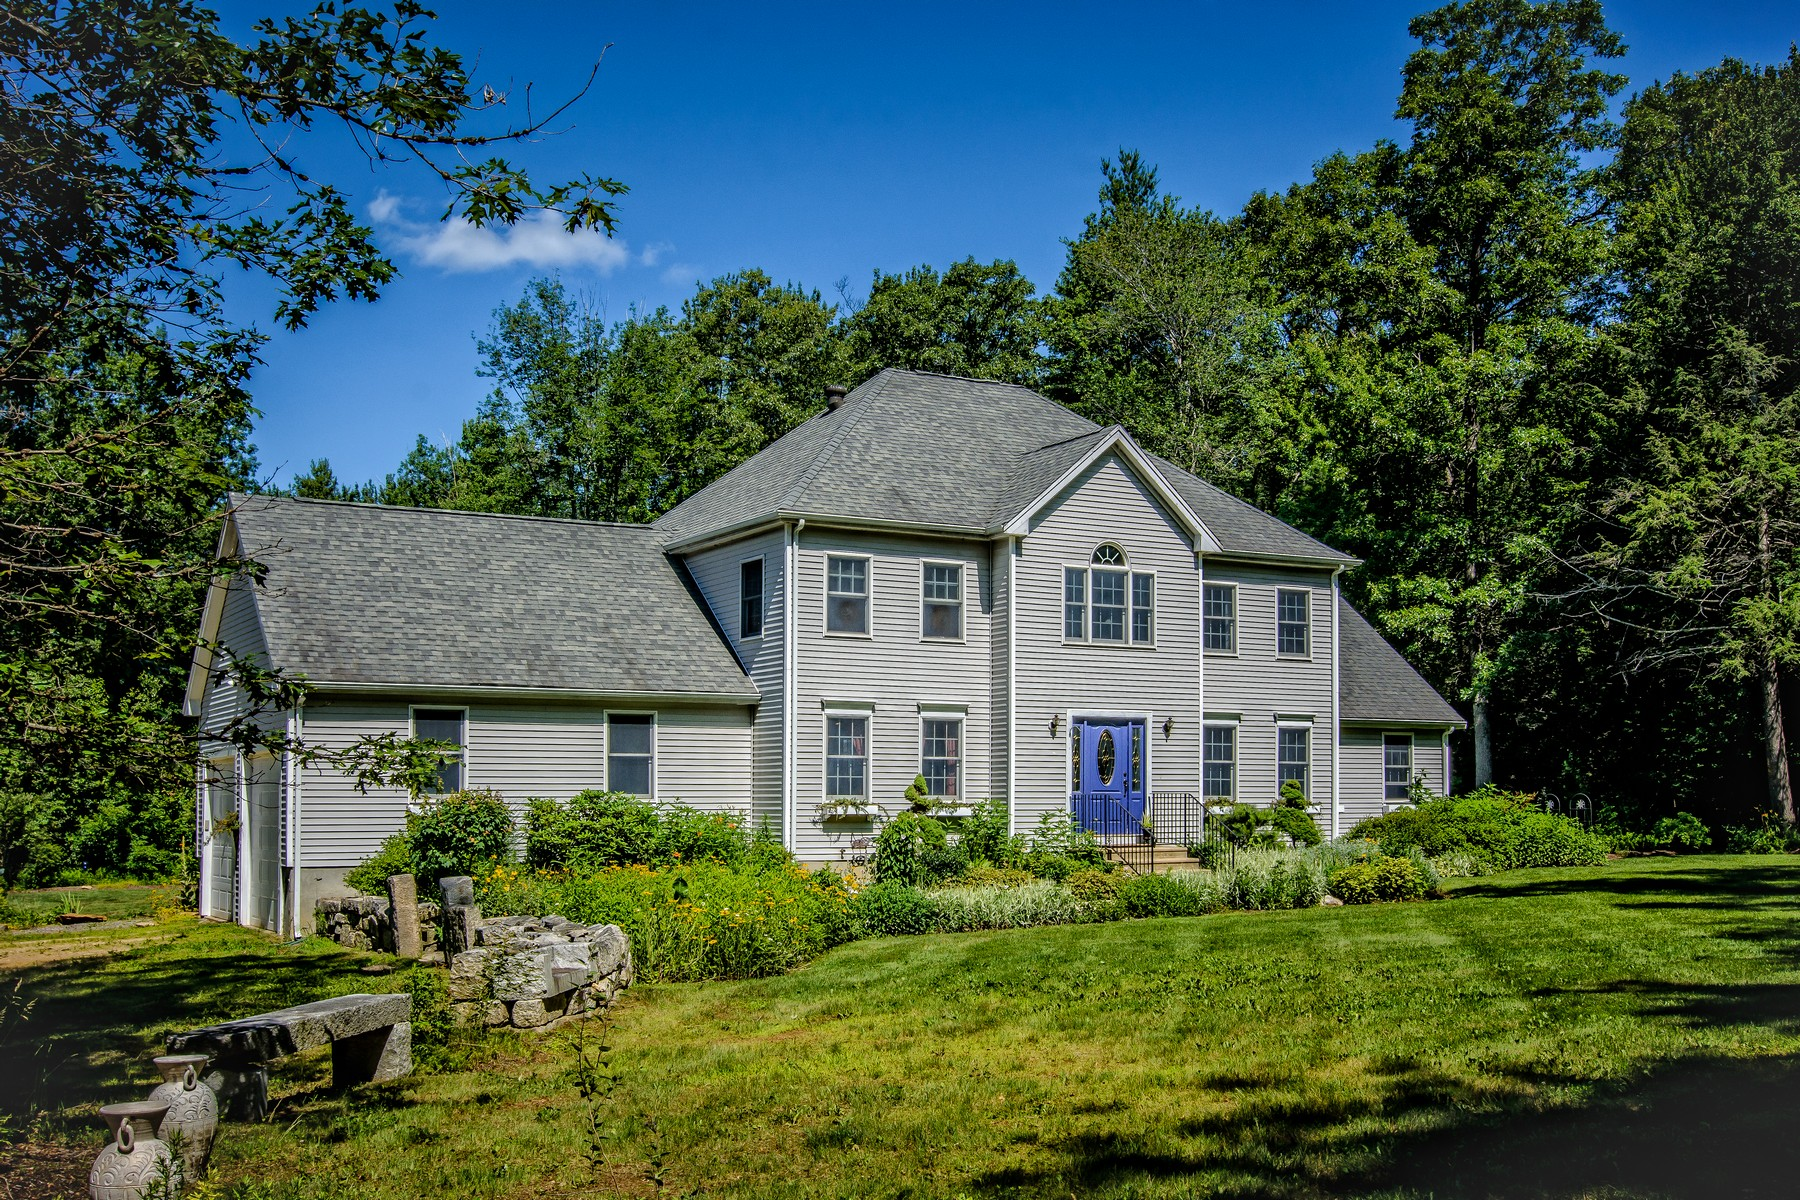 Single Family Home for Active at Unique Country Retreat 33 Molasses Hill Road Brookfield, Massachusetts 01506 United States